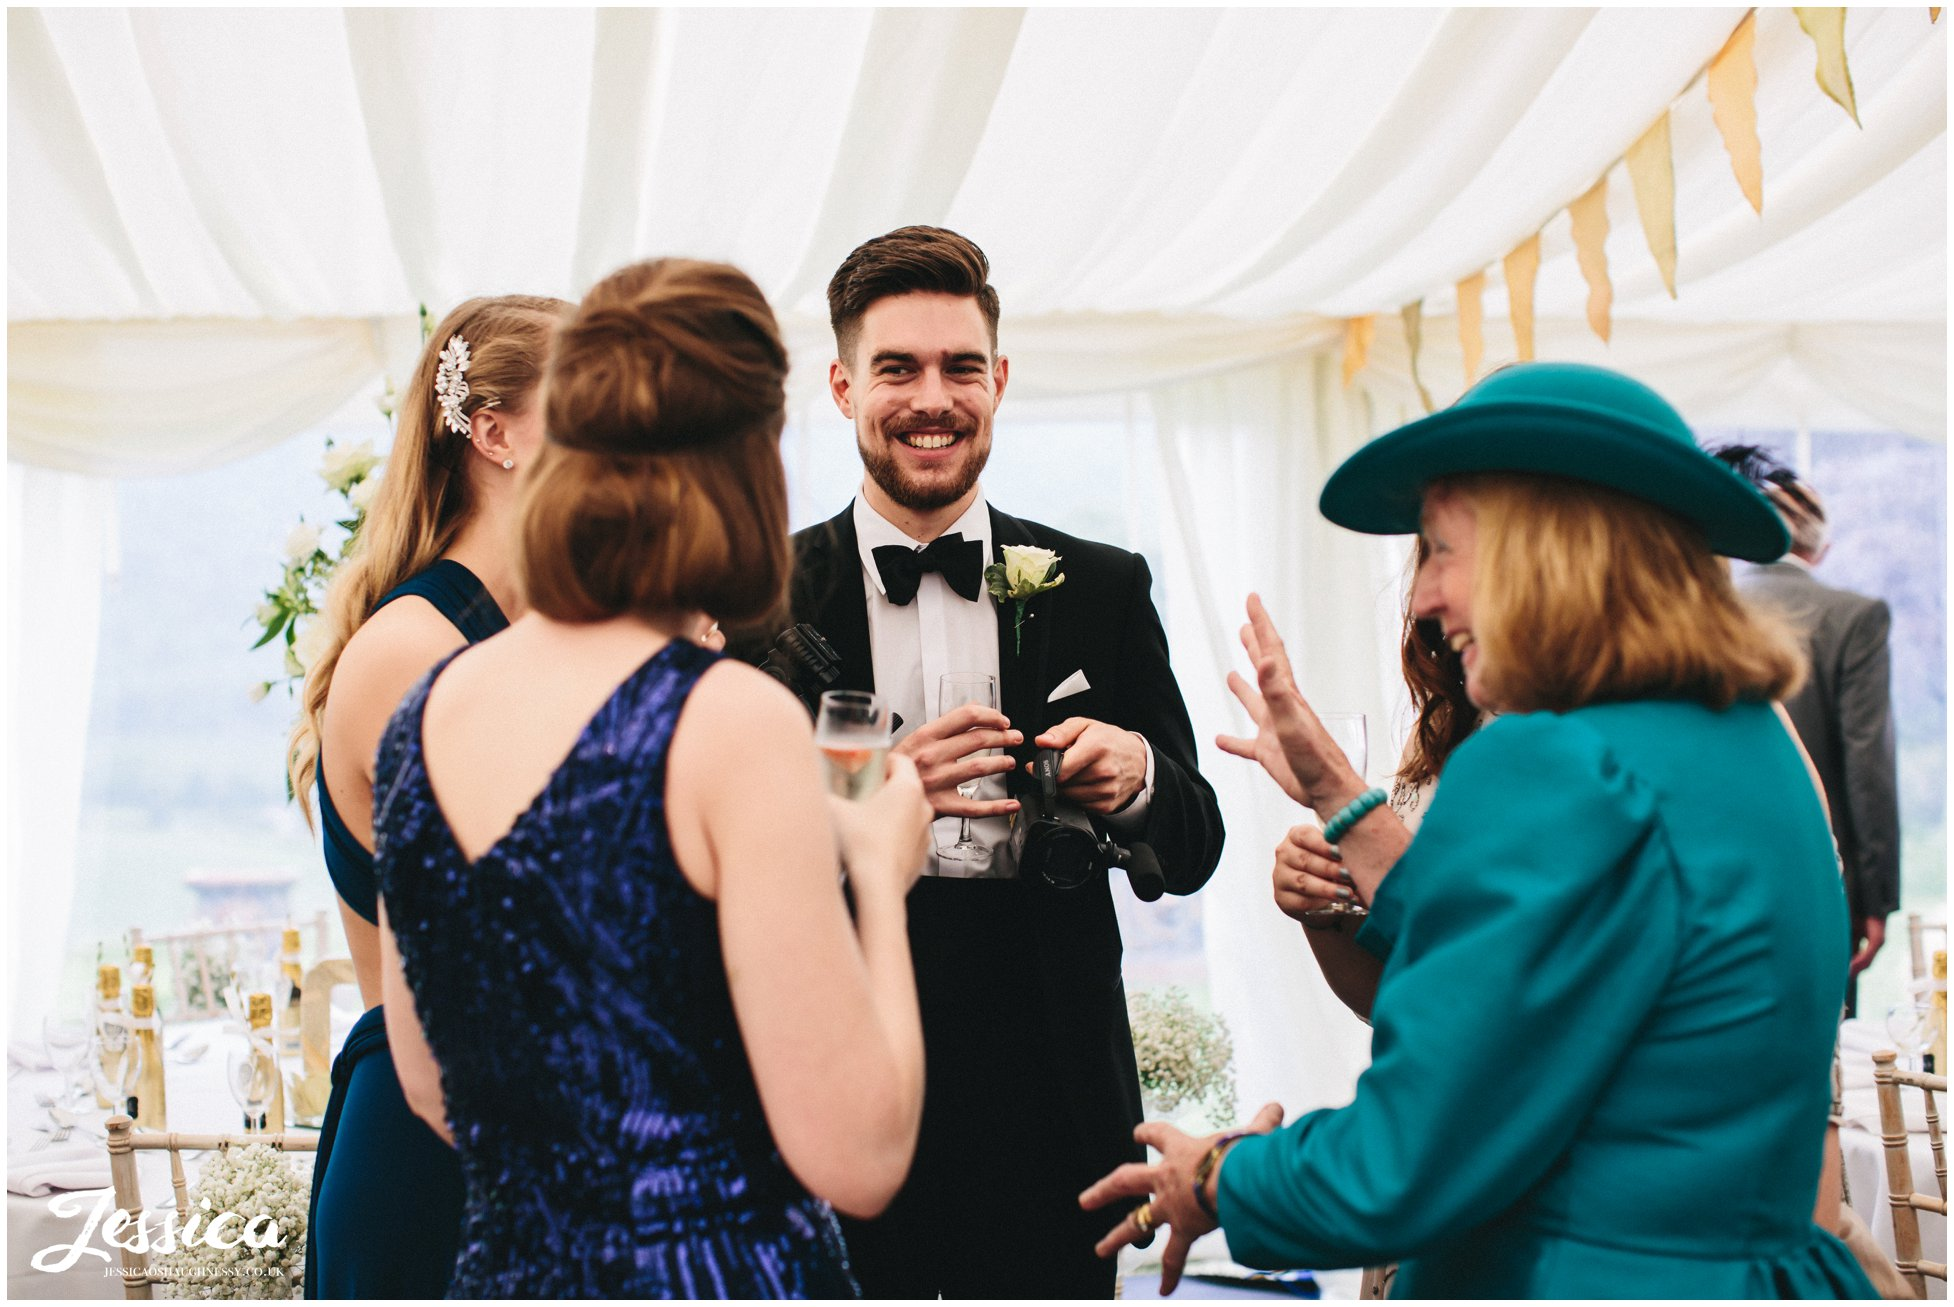 guests enjoy themselves after the trevor church ceremony in north wales